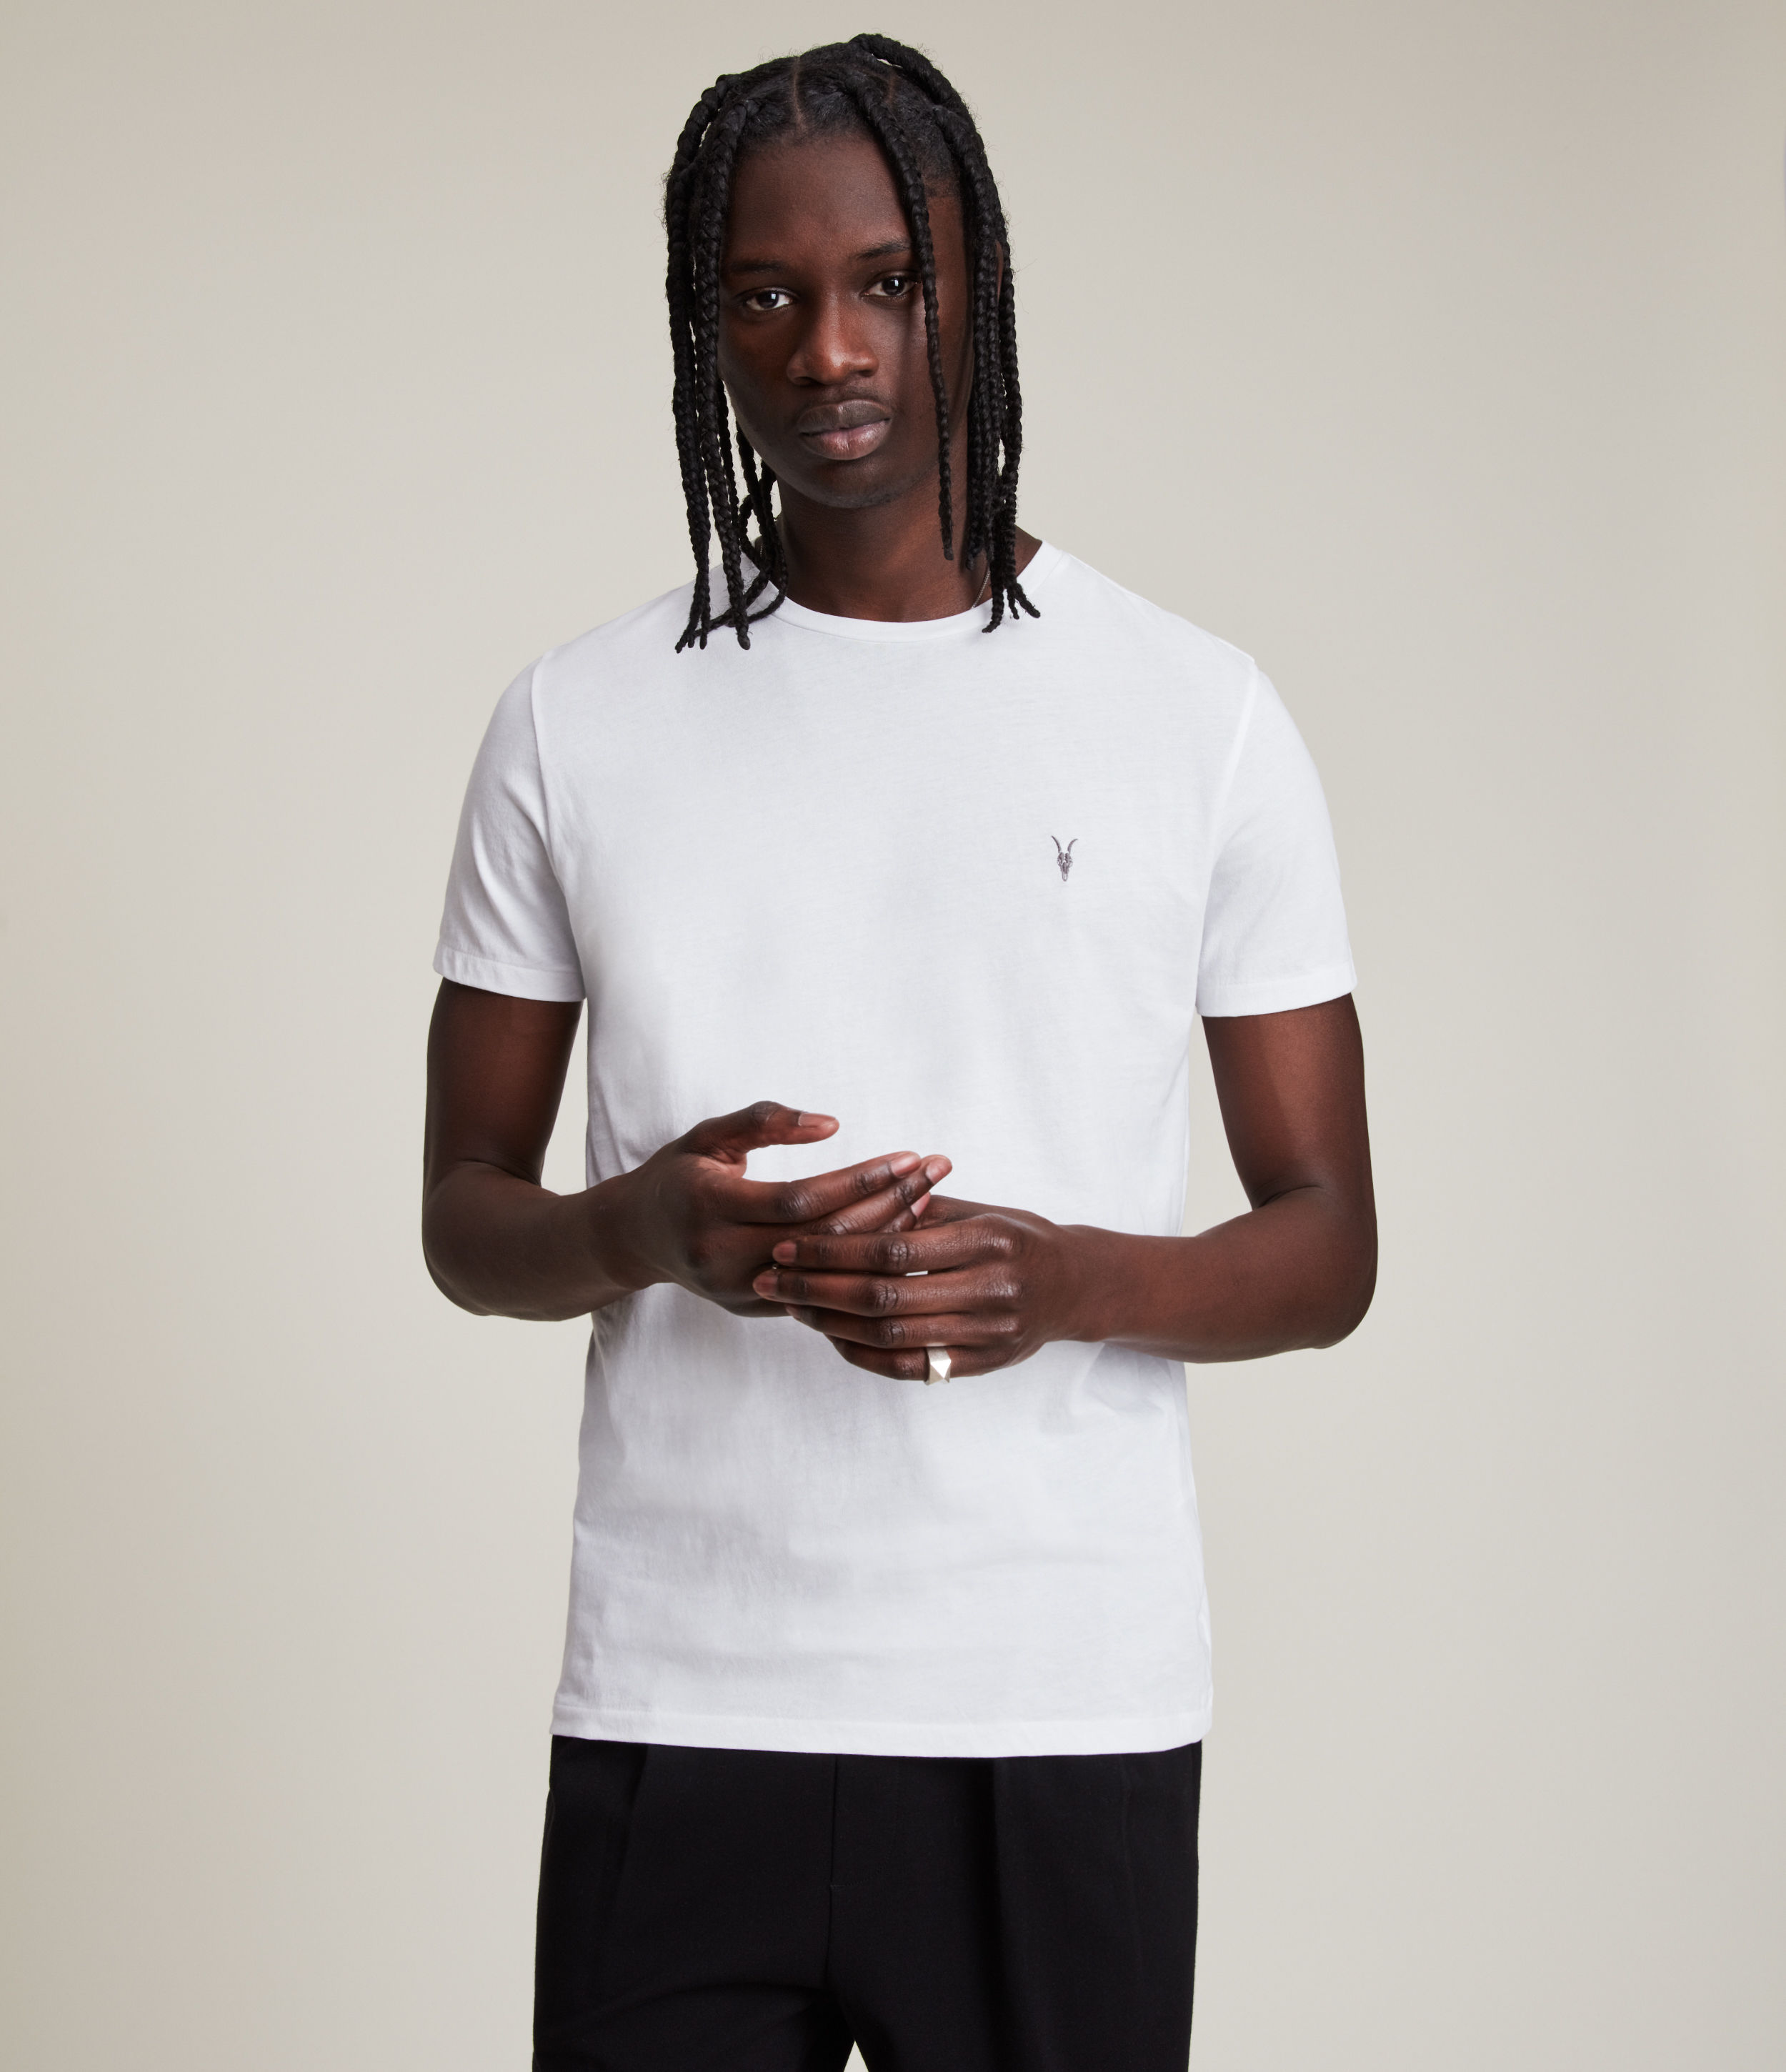 AllSaints Men's Cotton Slim Fit Regular Tonic Pullover Crew Neck T-Shirt, White, Size: S